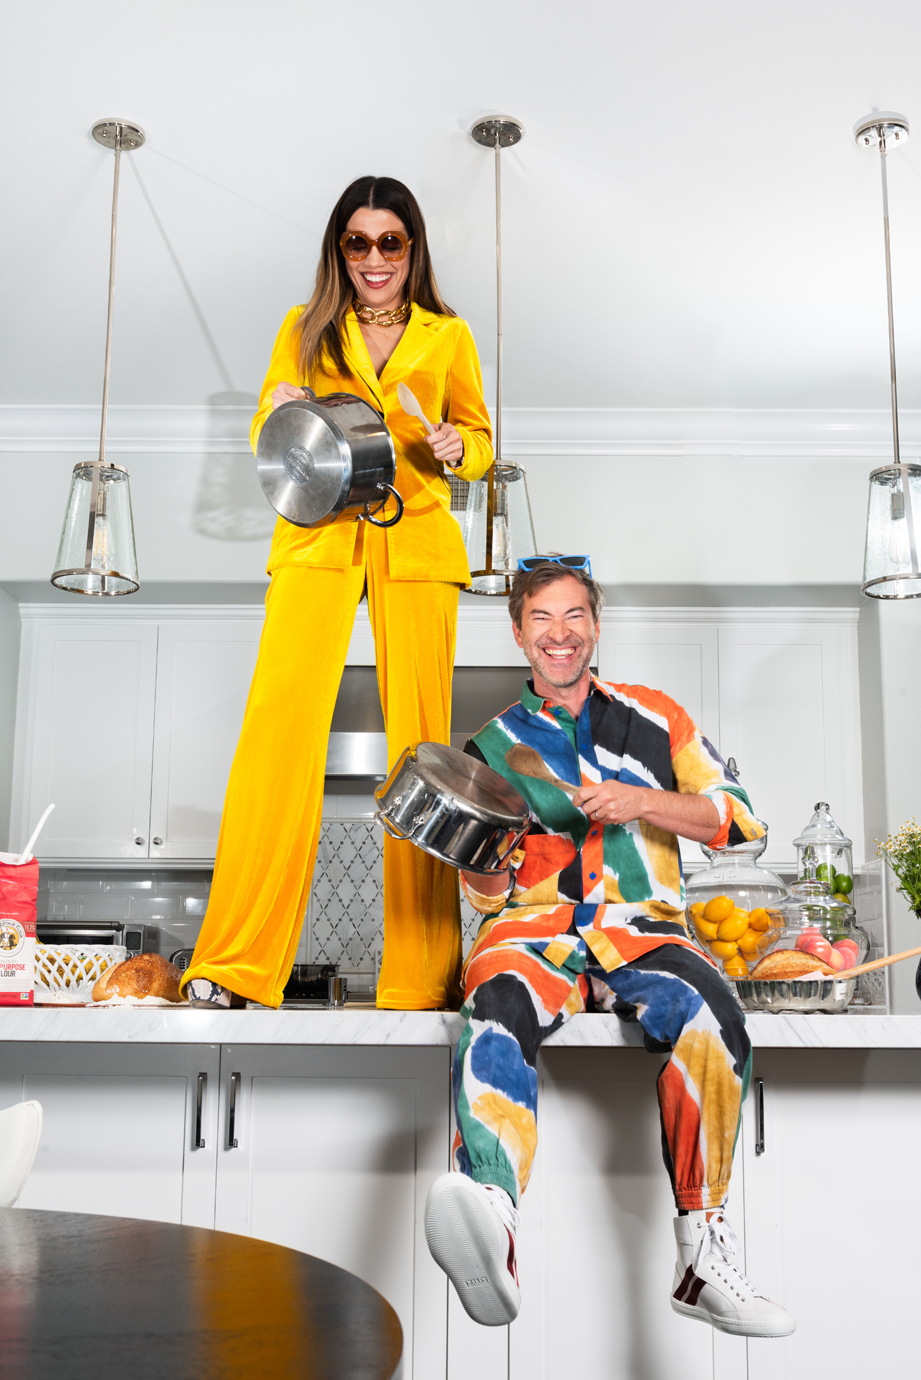 Mark Duplass sits and Natalie Morales stands on a kitchen countertop holding pots and laughing.